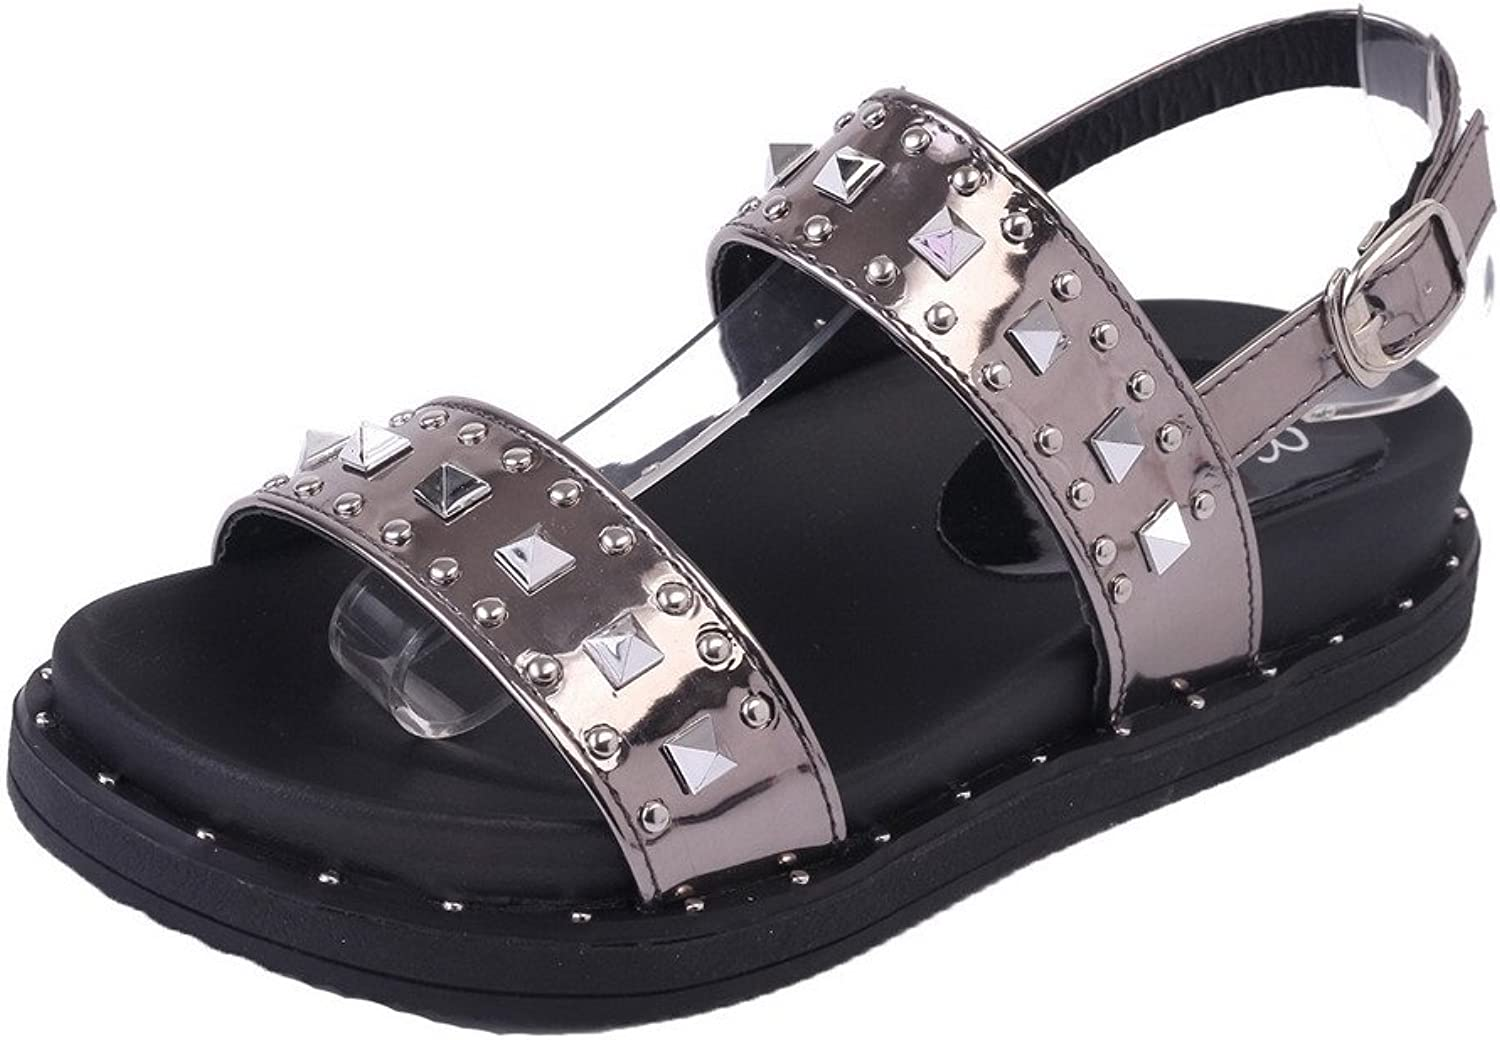 WeiPoot Women's Open-Toe Low-Heels PU Solid Buckle Sandals